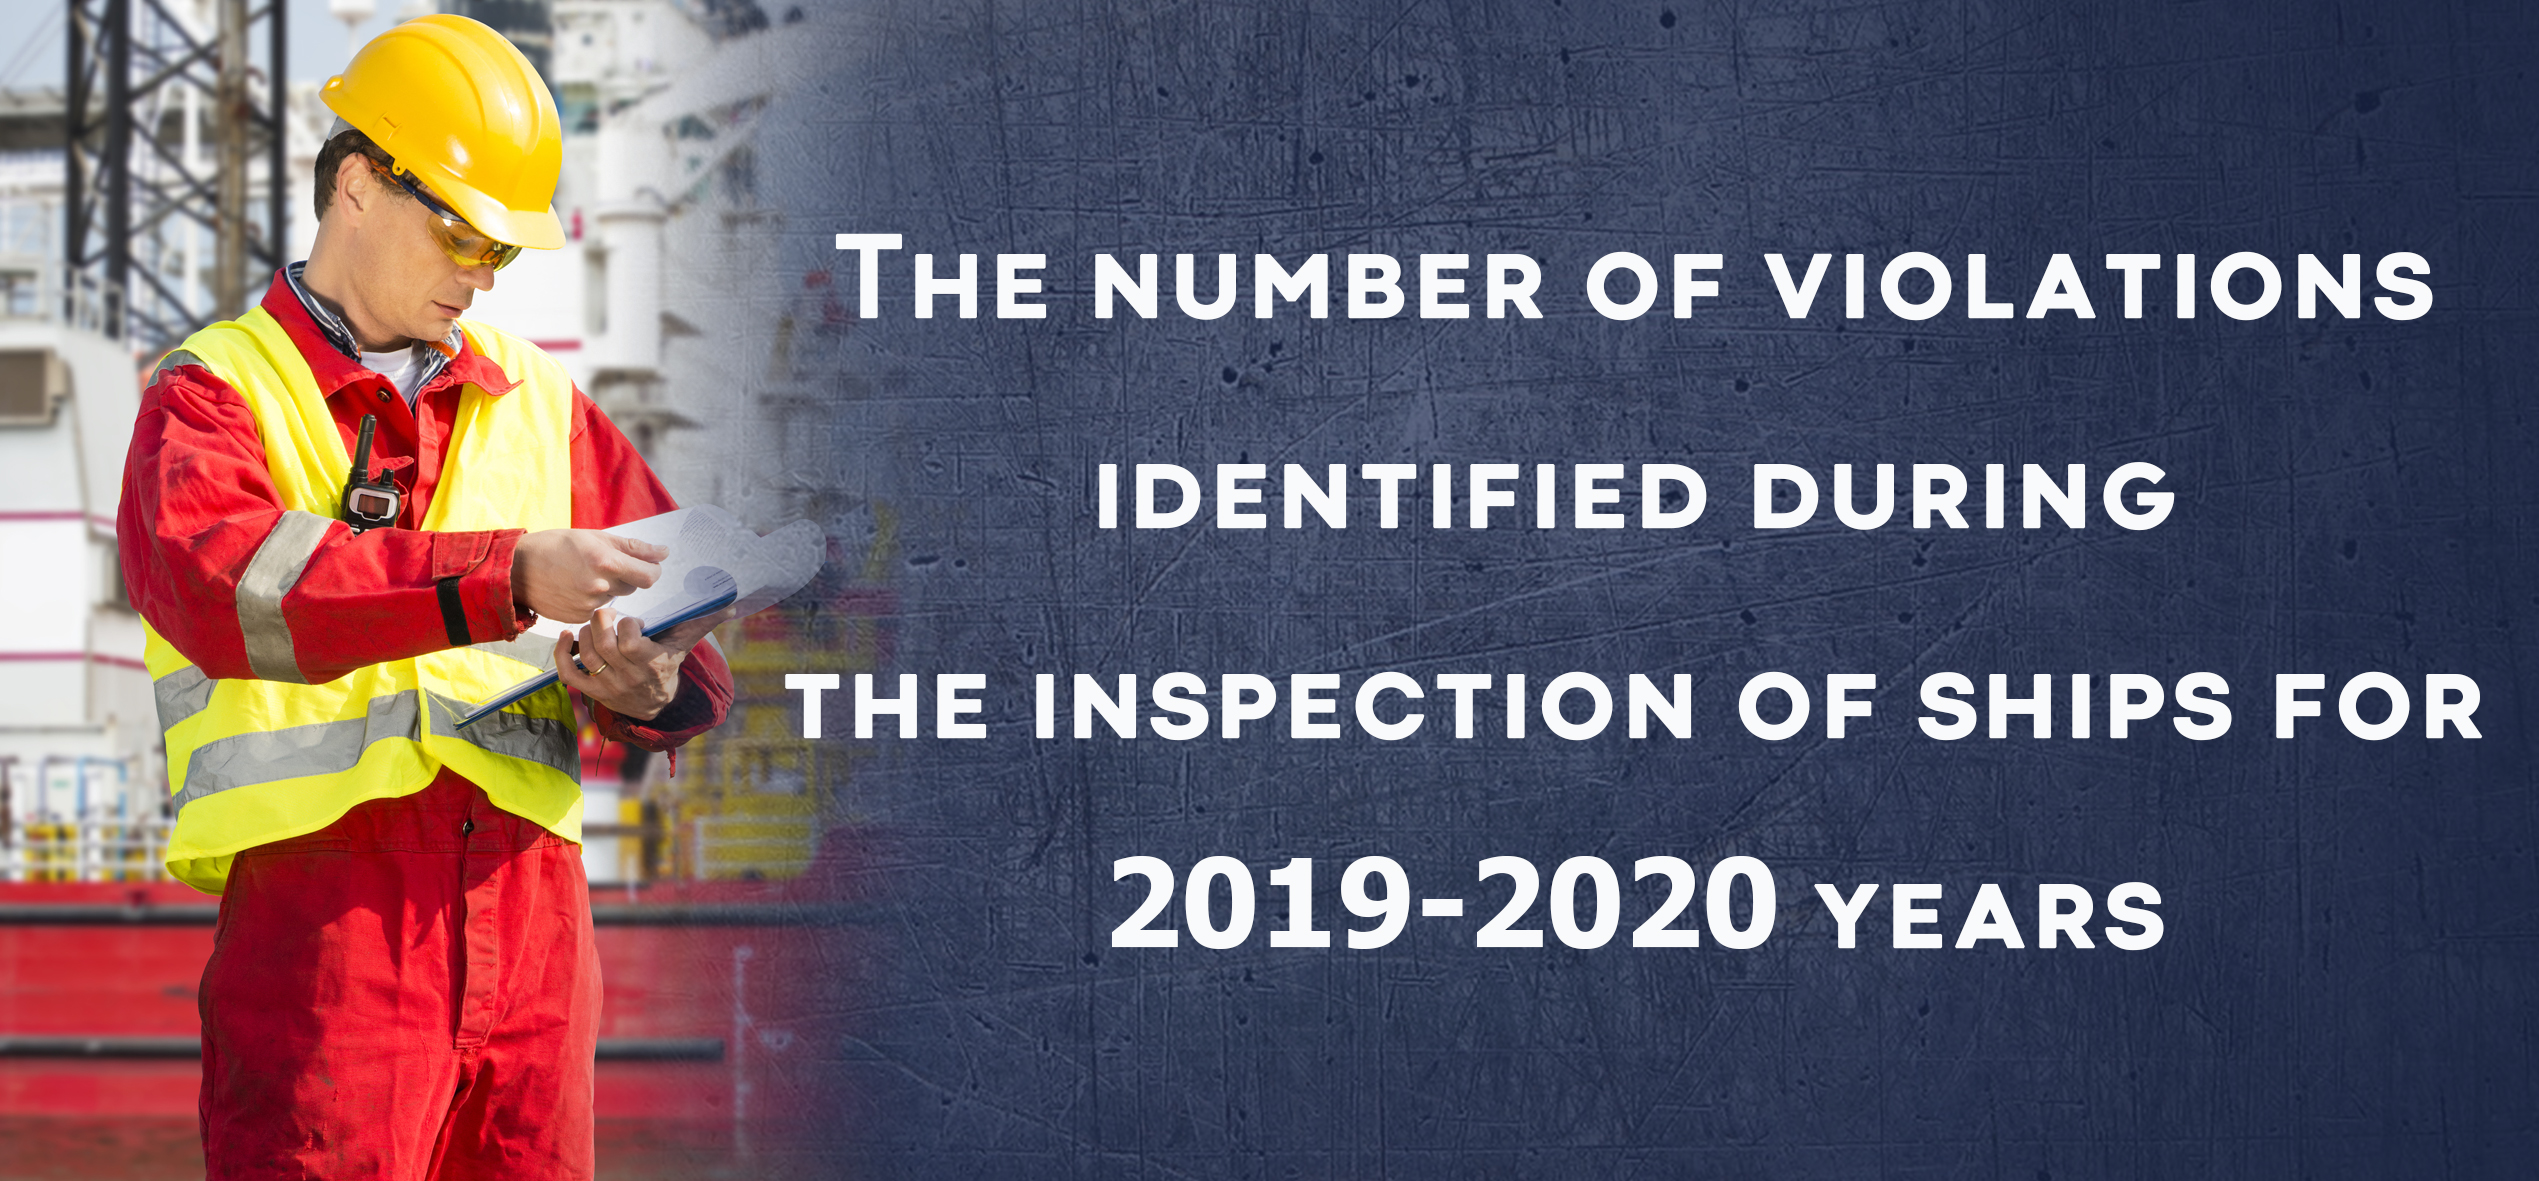 PSC Inspection Analysis (2019-2020)